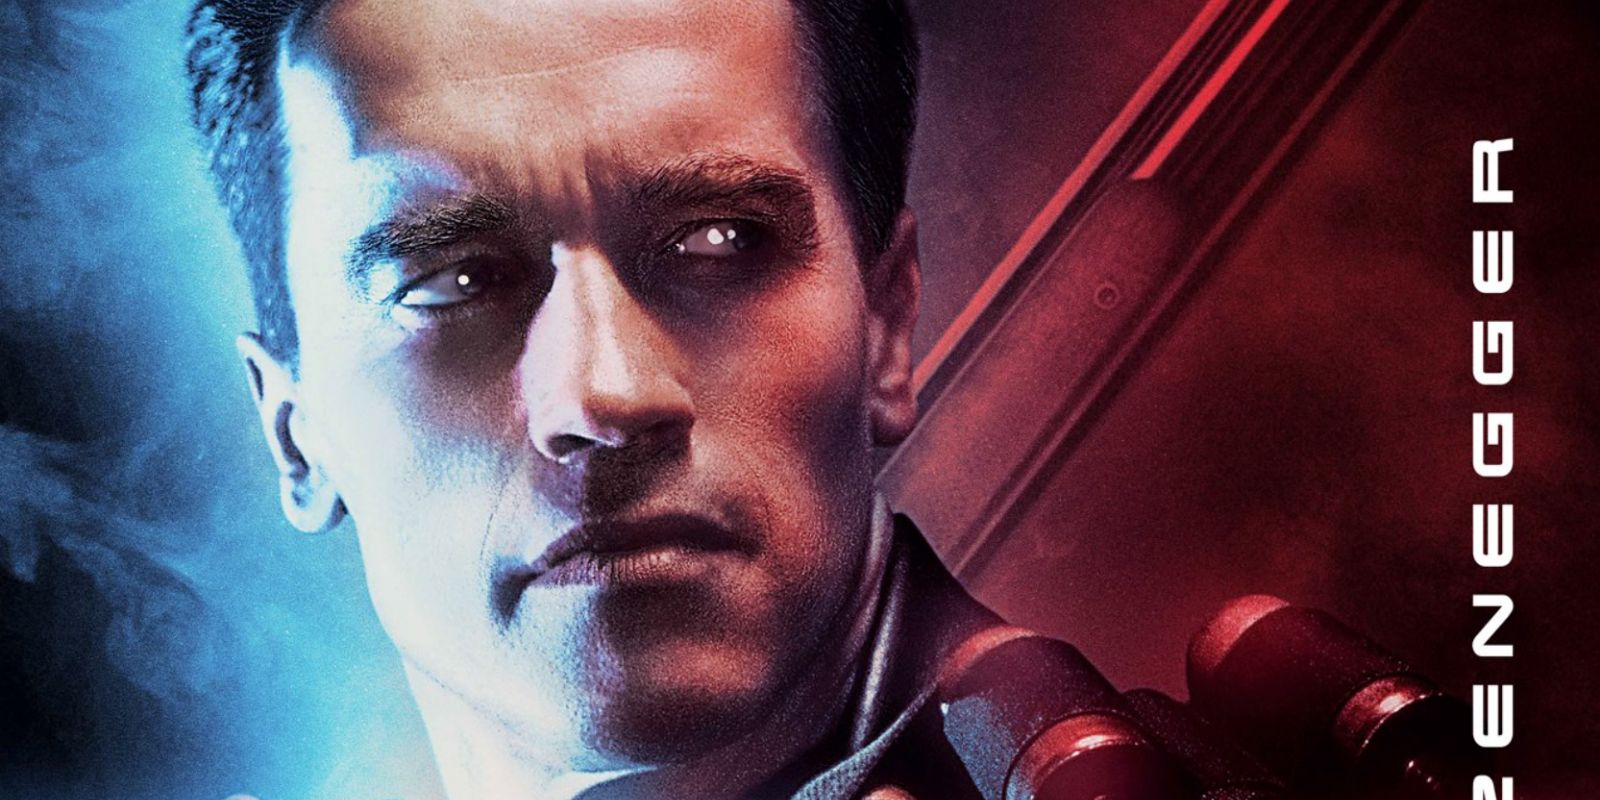 james camerons science fiction film terminator ii essay Arnold schwarzenegger day: true lies (1994) what is arguably camerons's weakest film the lester bangs of science fiction.